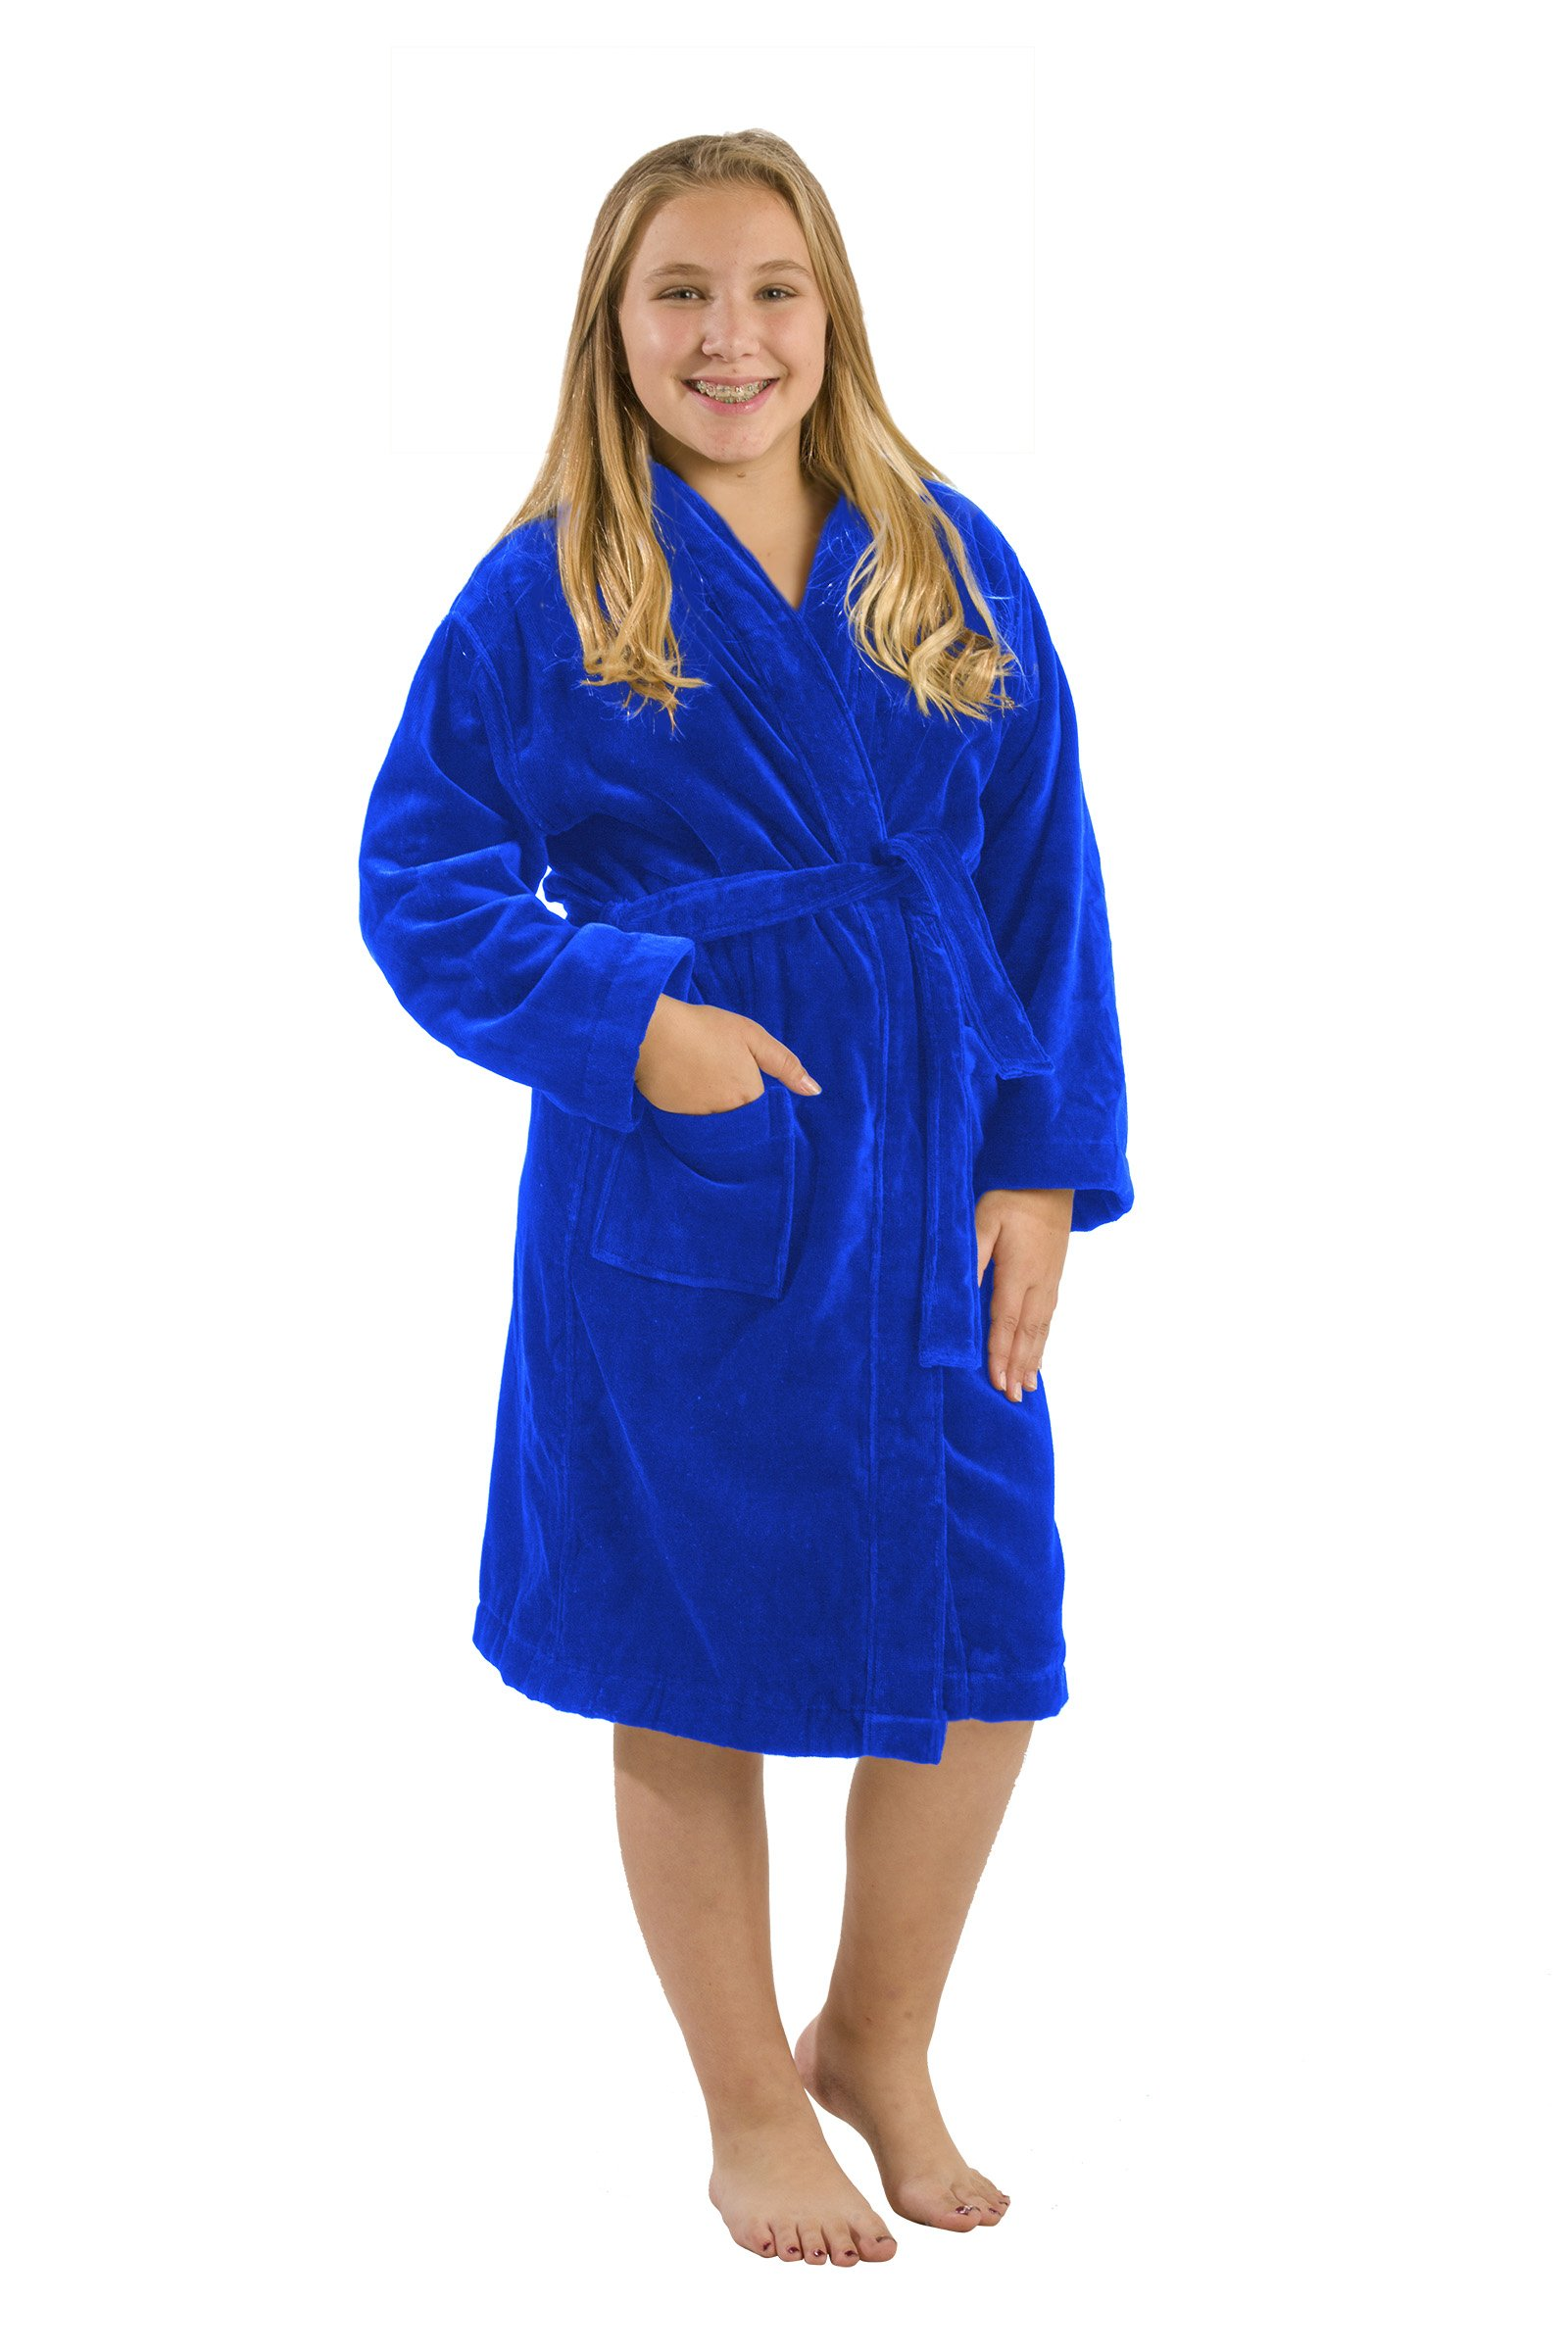 byLora Custom Embroidered Hooded Kids Robes, Royal Blue, Small